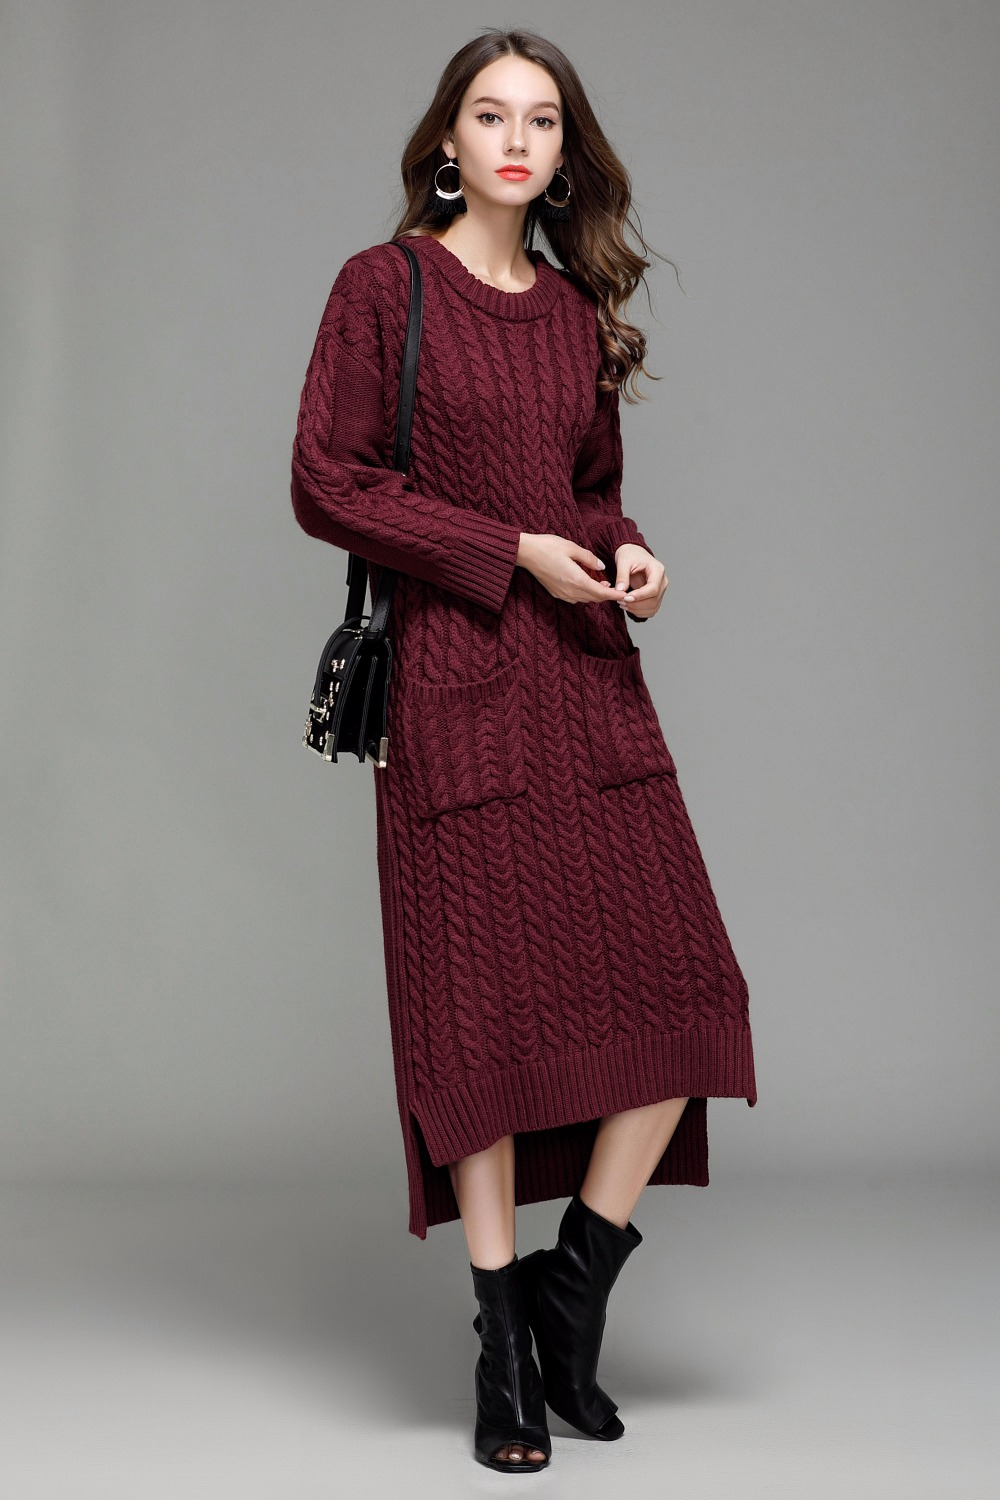 2018 Autumn Winter Women Warm Sweater Dress Pull Hiver O Neck Long Sleeve Twist Flowers Knitted Dress Ropa Invierno Mujer